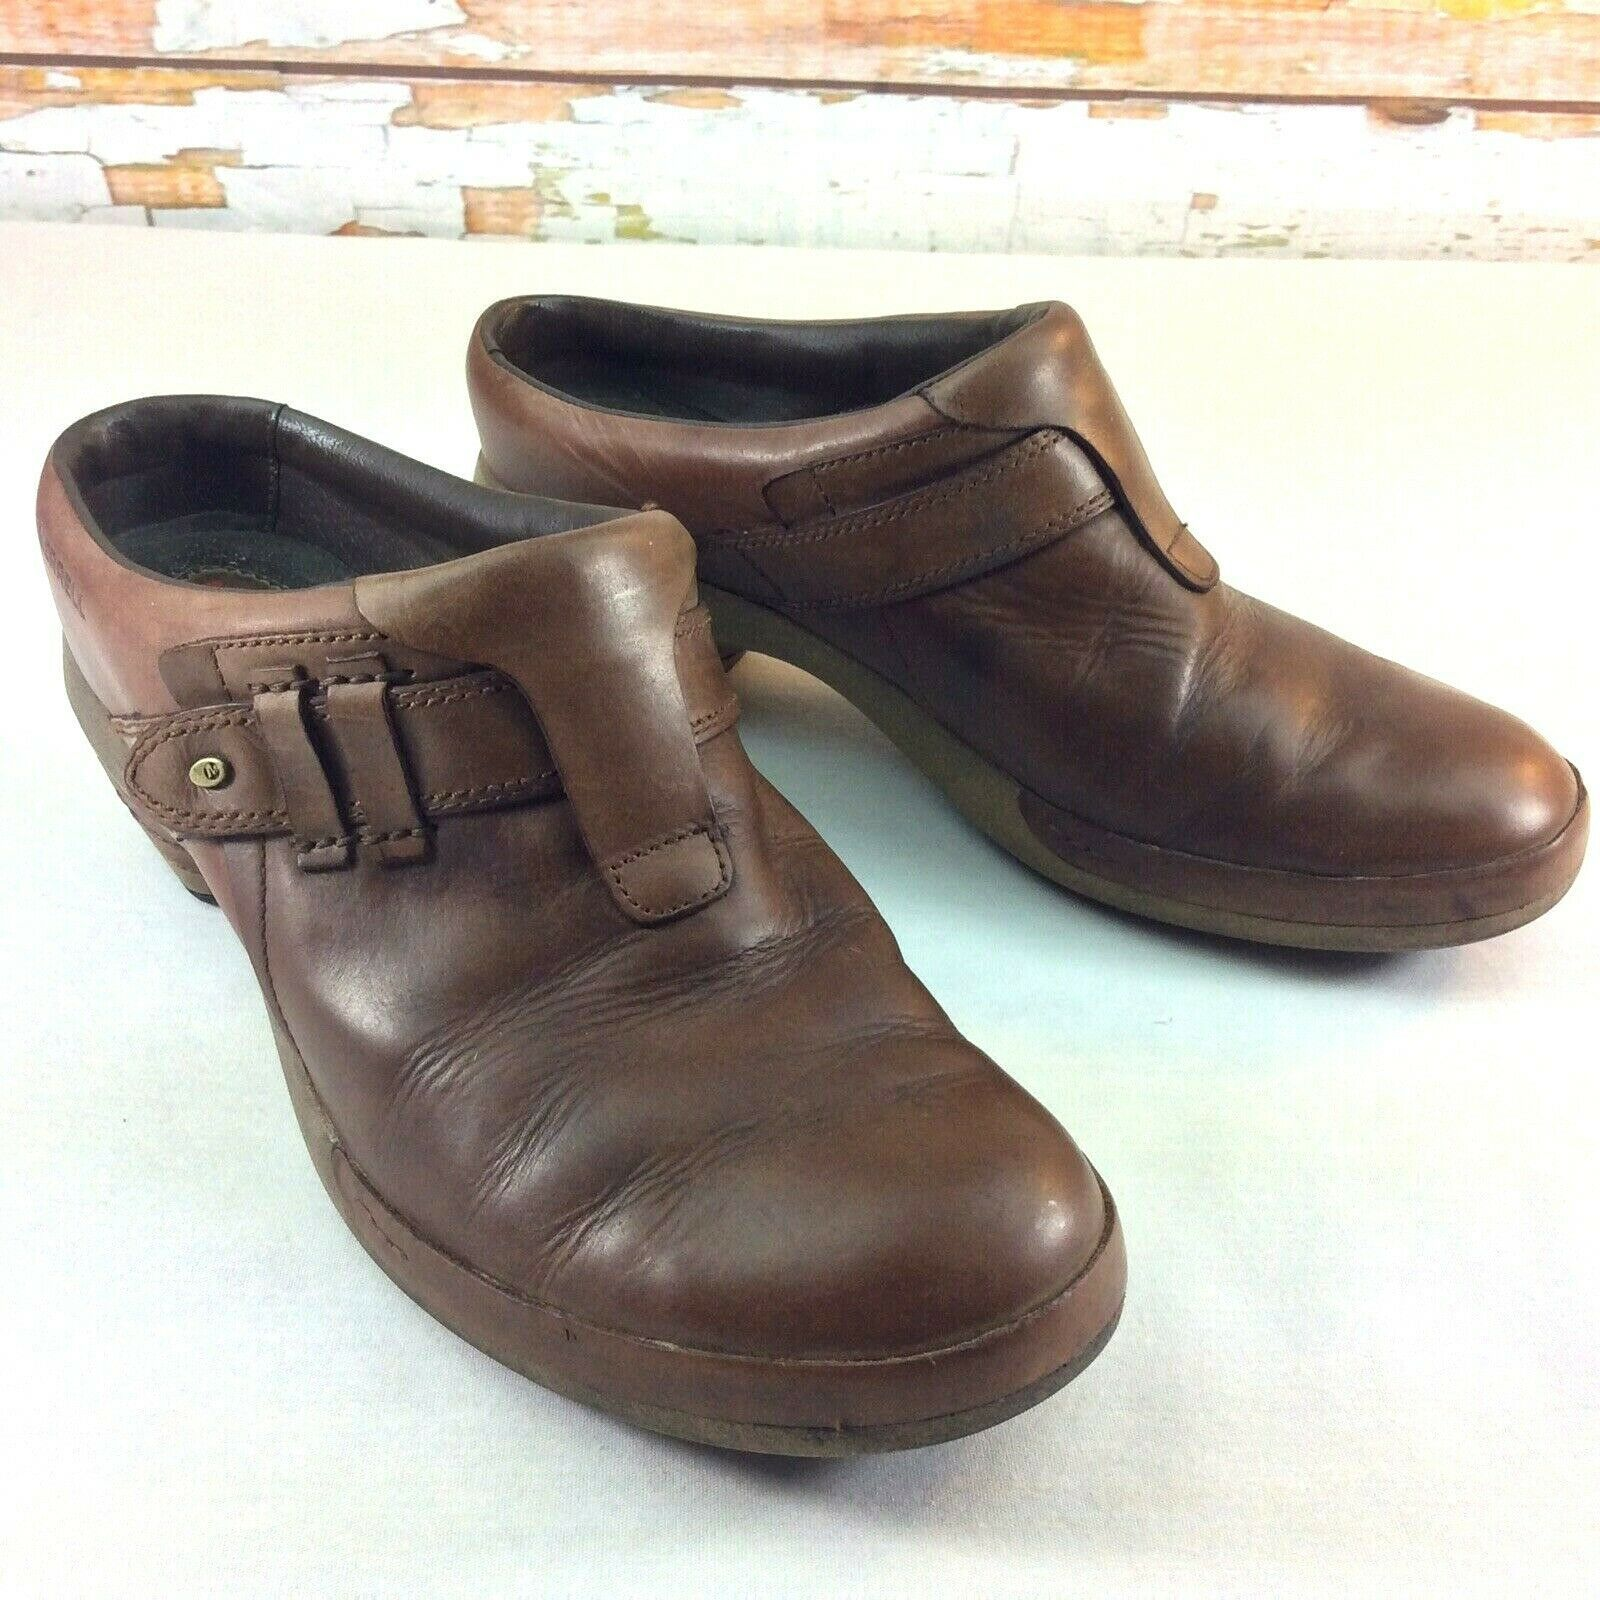 """MERRELL Womens Size 11 Clogs Luxe Plunge Brown Leather 2.5"""" Heel Slip On J48518"""